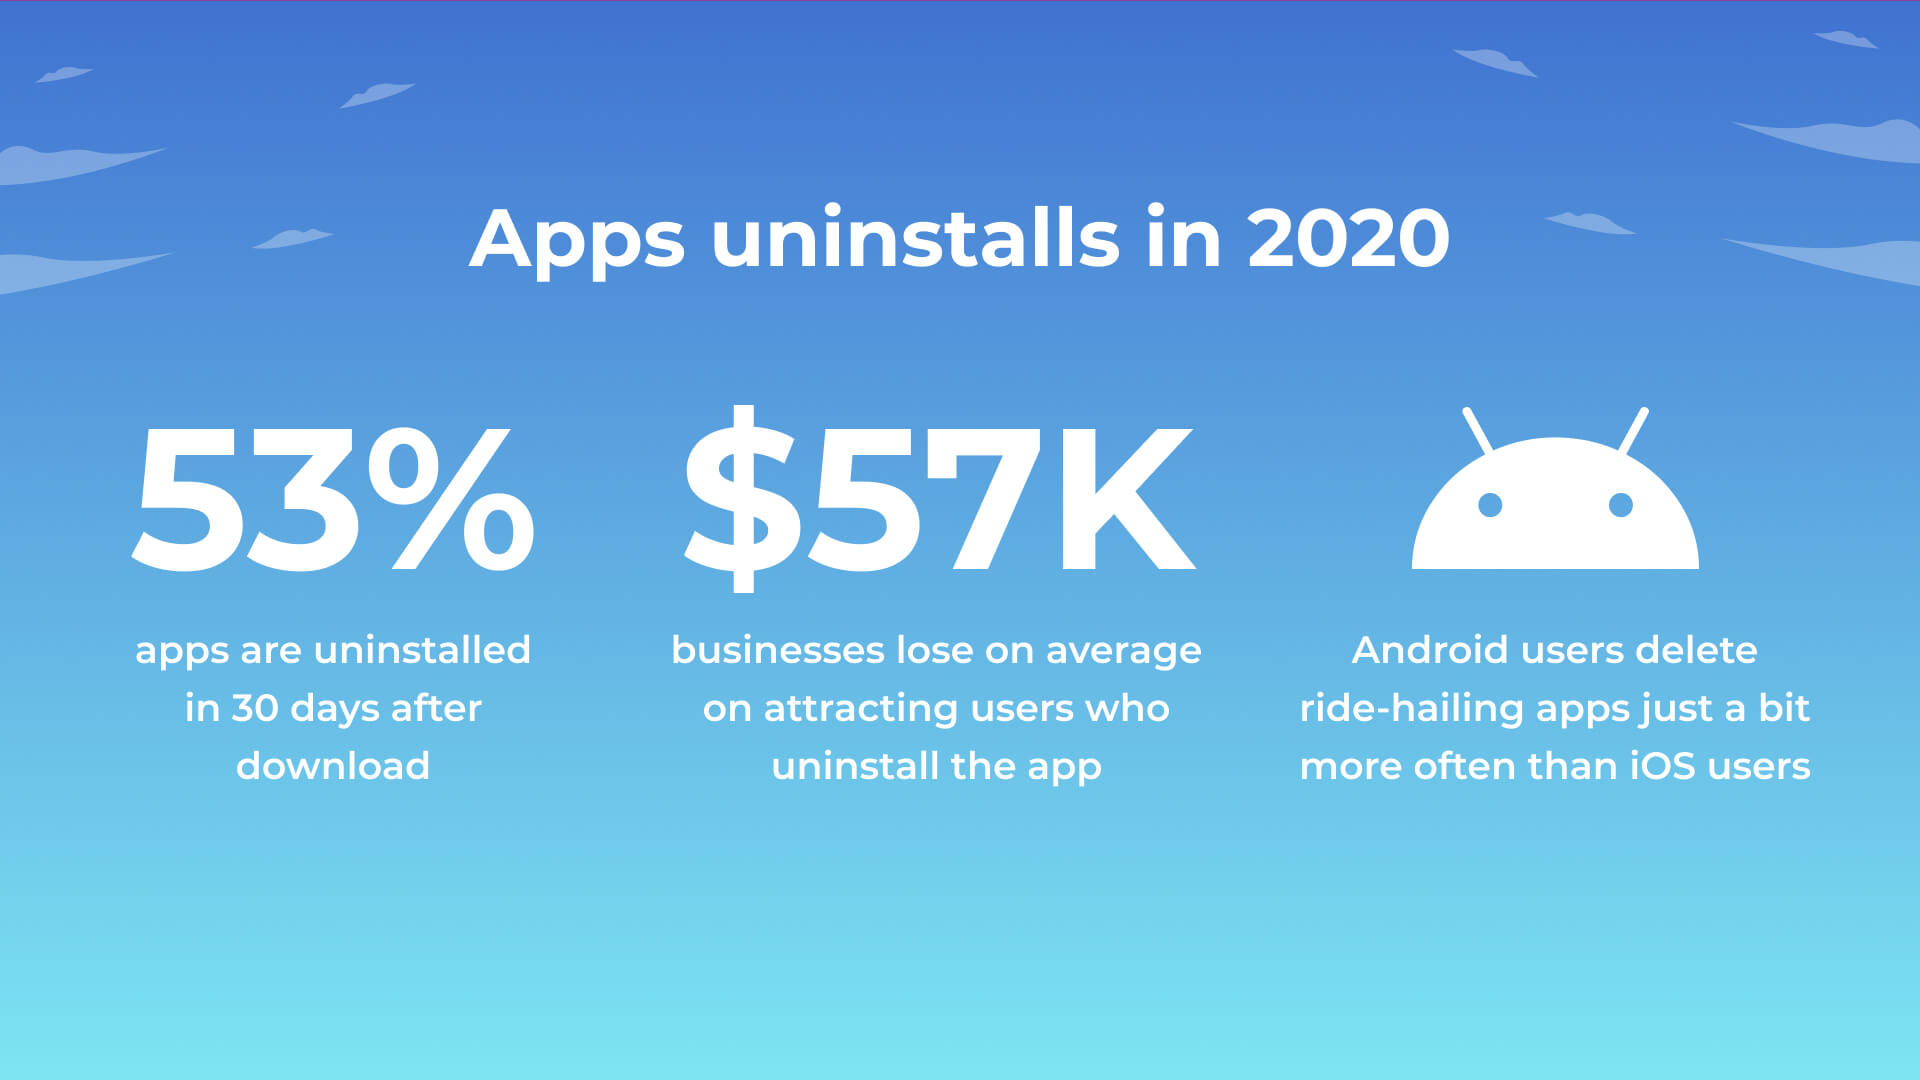 uninstall mobile apps loss disadvantages statistics